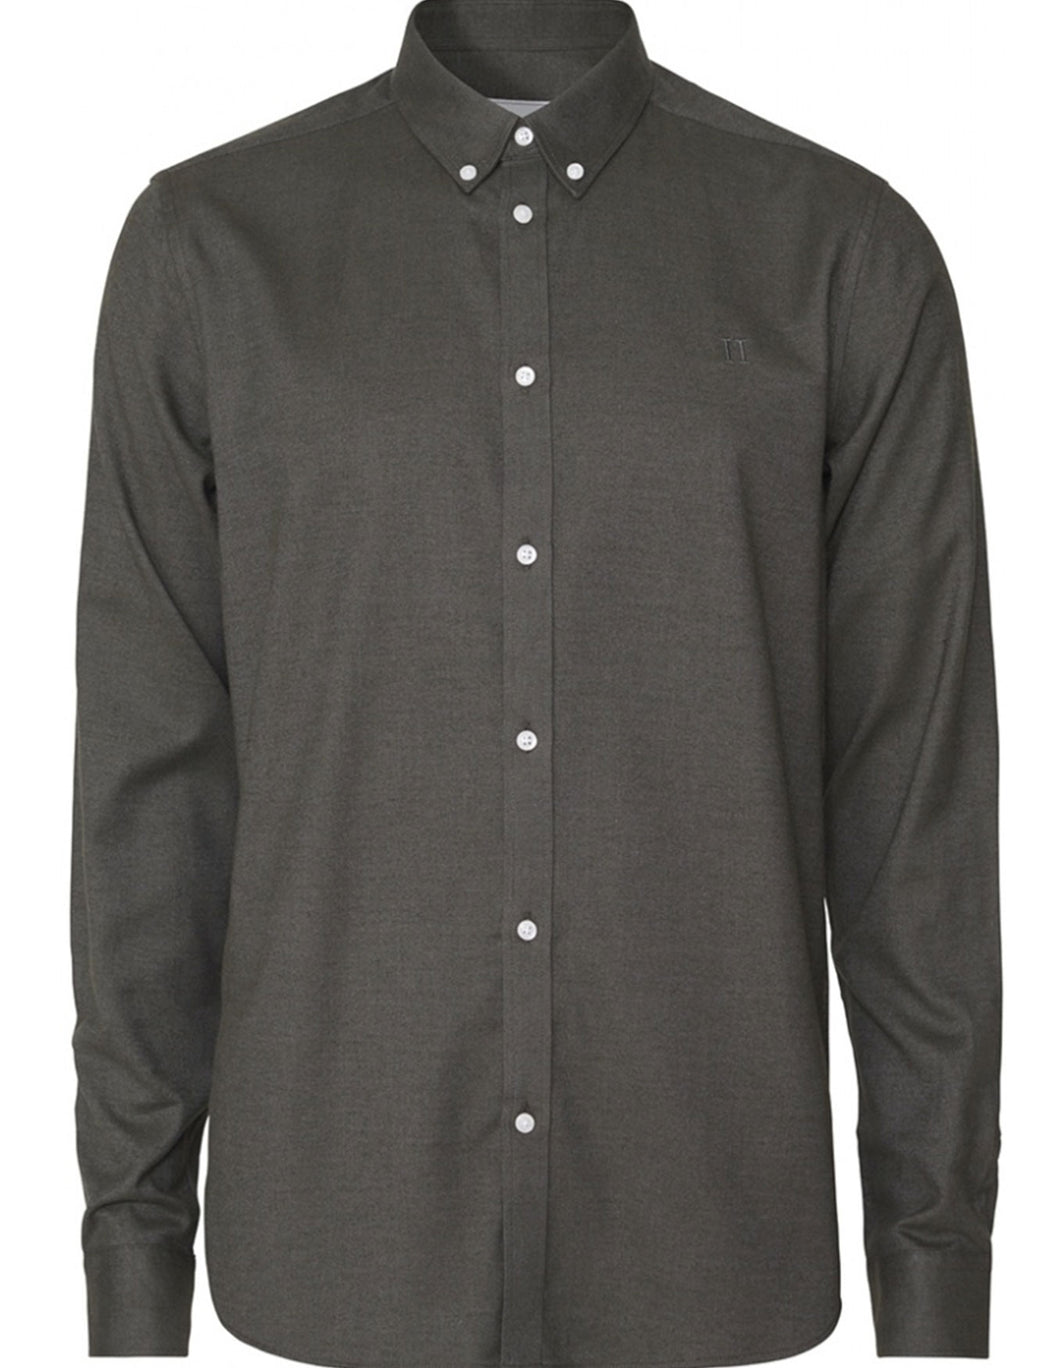 Harrison Shirt - Deep Forrest